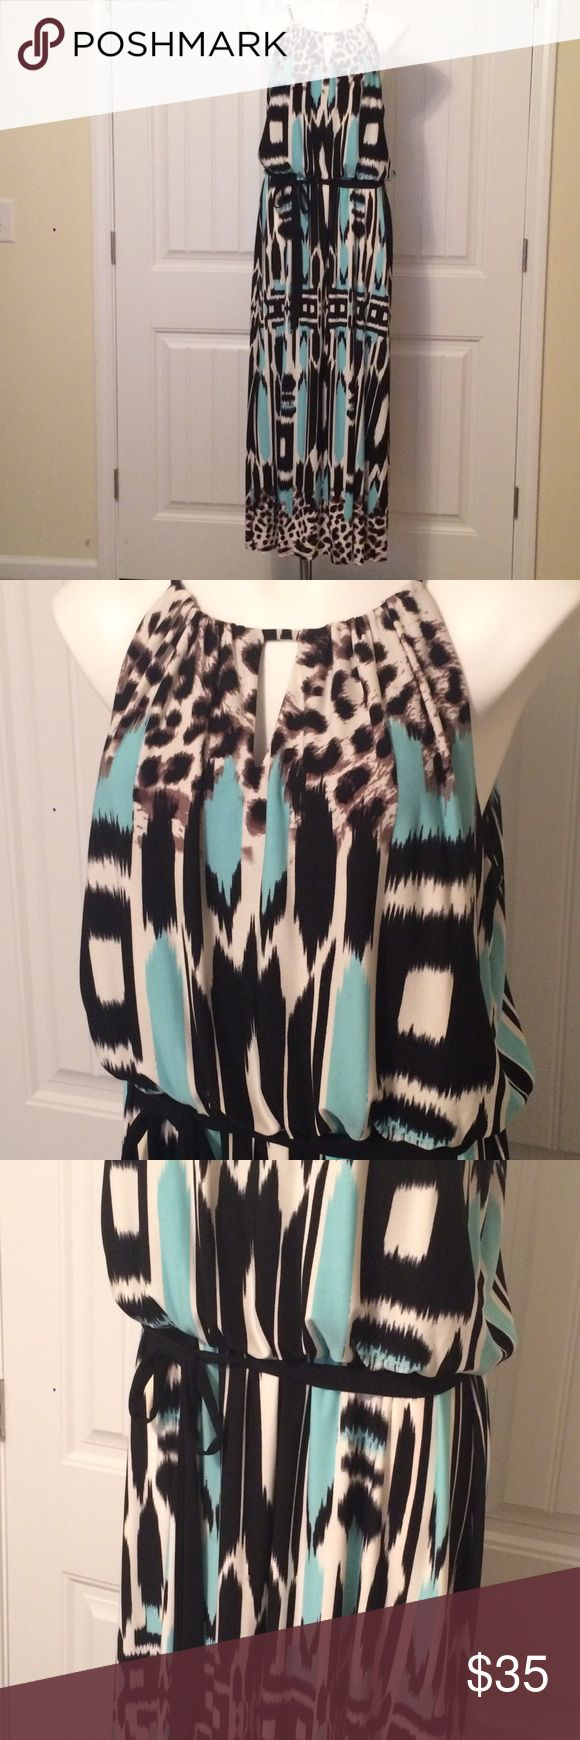 Turquoise animal print maxi Animal print maxi dress in Aqua blue, brown, whit & black. Soft poly knit for easy wearing.  Has soft elastic at waste, with soft sash tie belt.  Button closure at back. NWT Roz & Ali Dresses Maxi